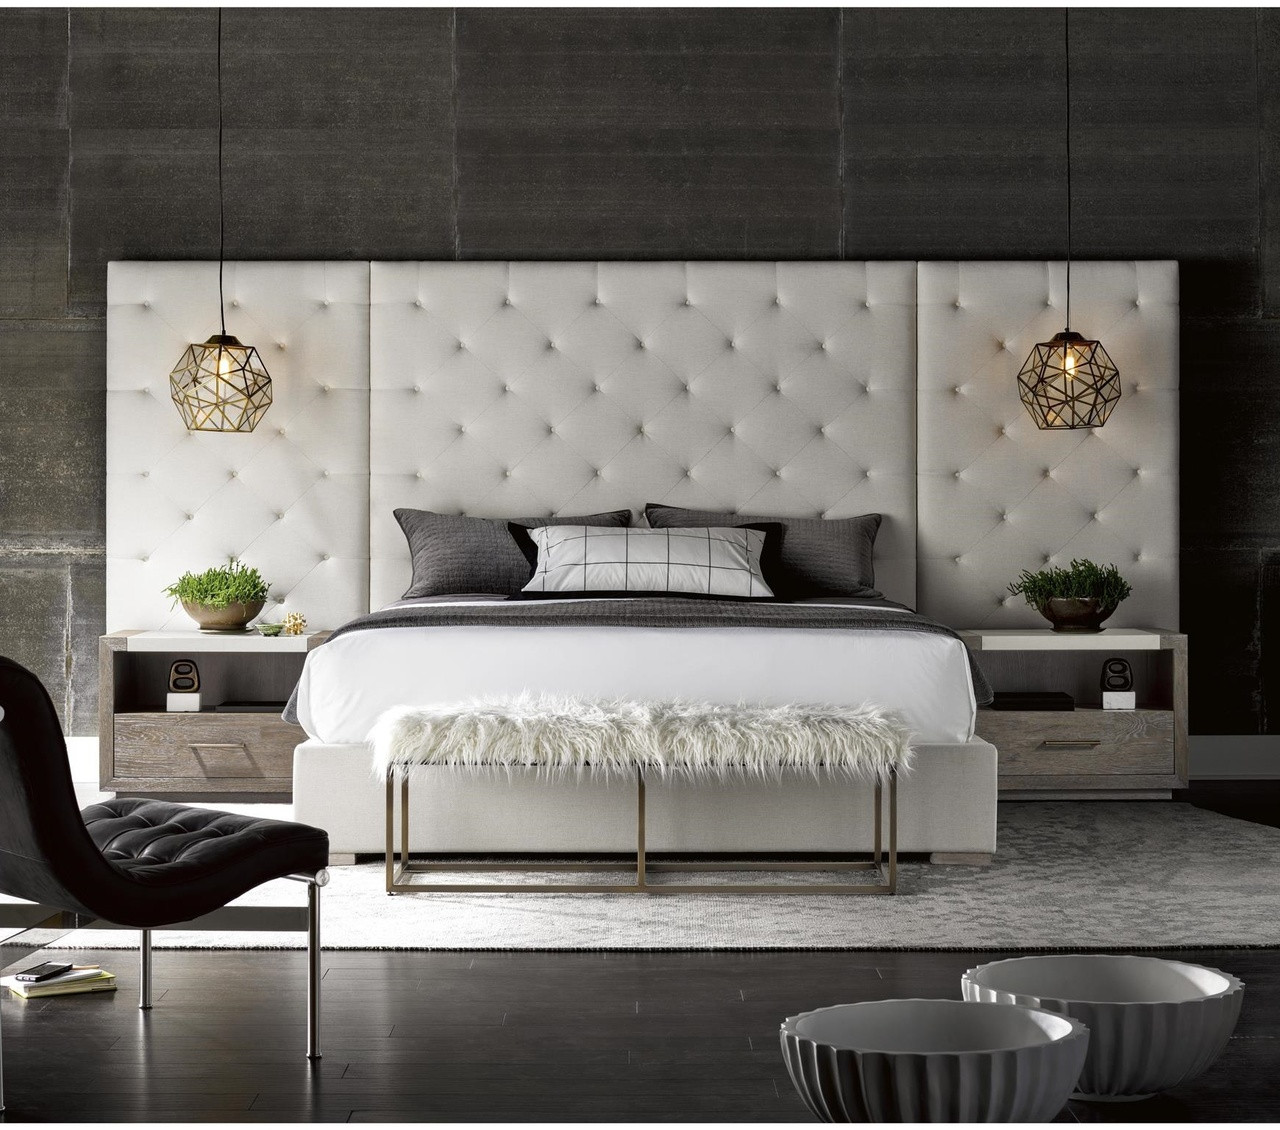 Modern Box-tufted Extended Headboard Fabric Platform Bed - King Zin Home